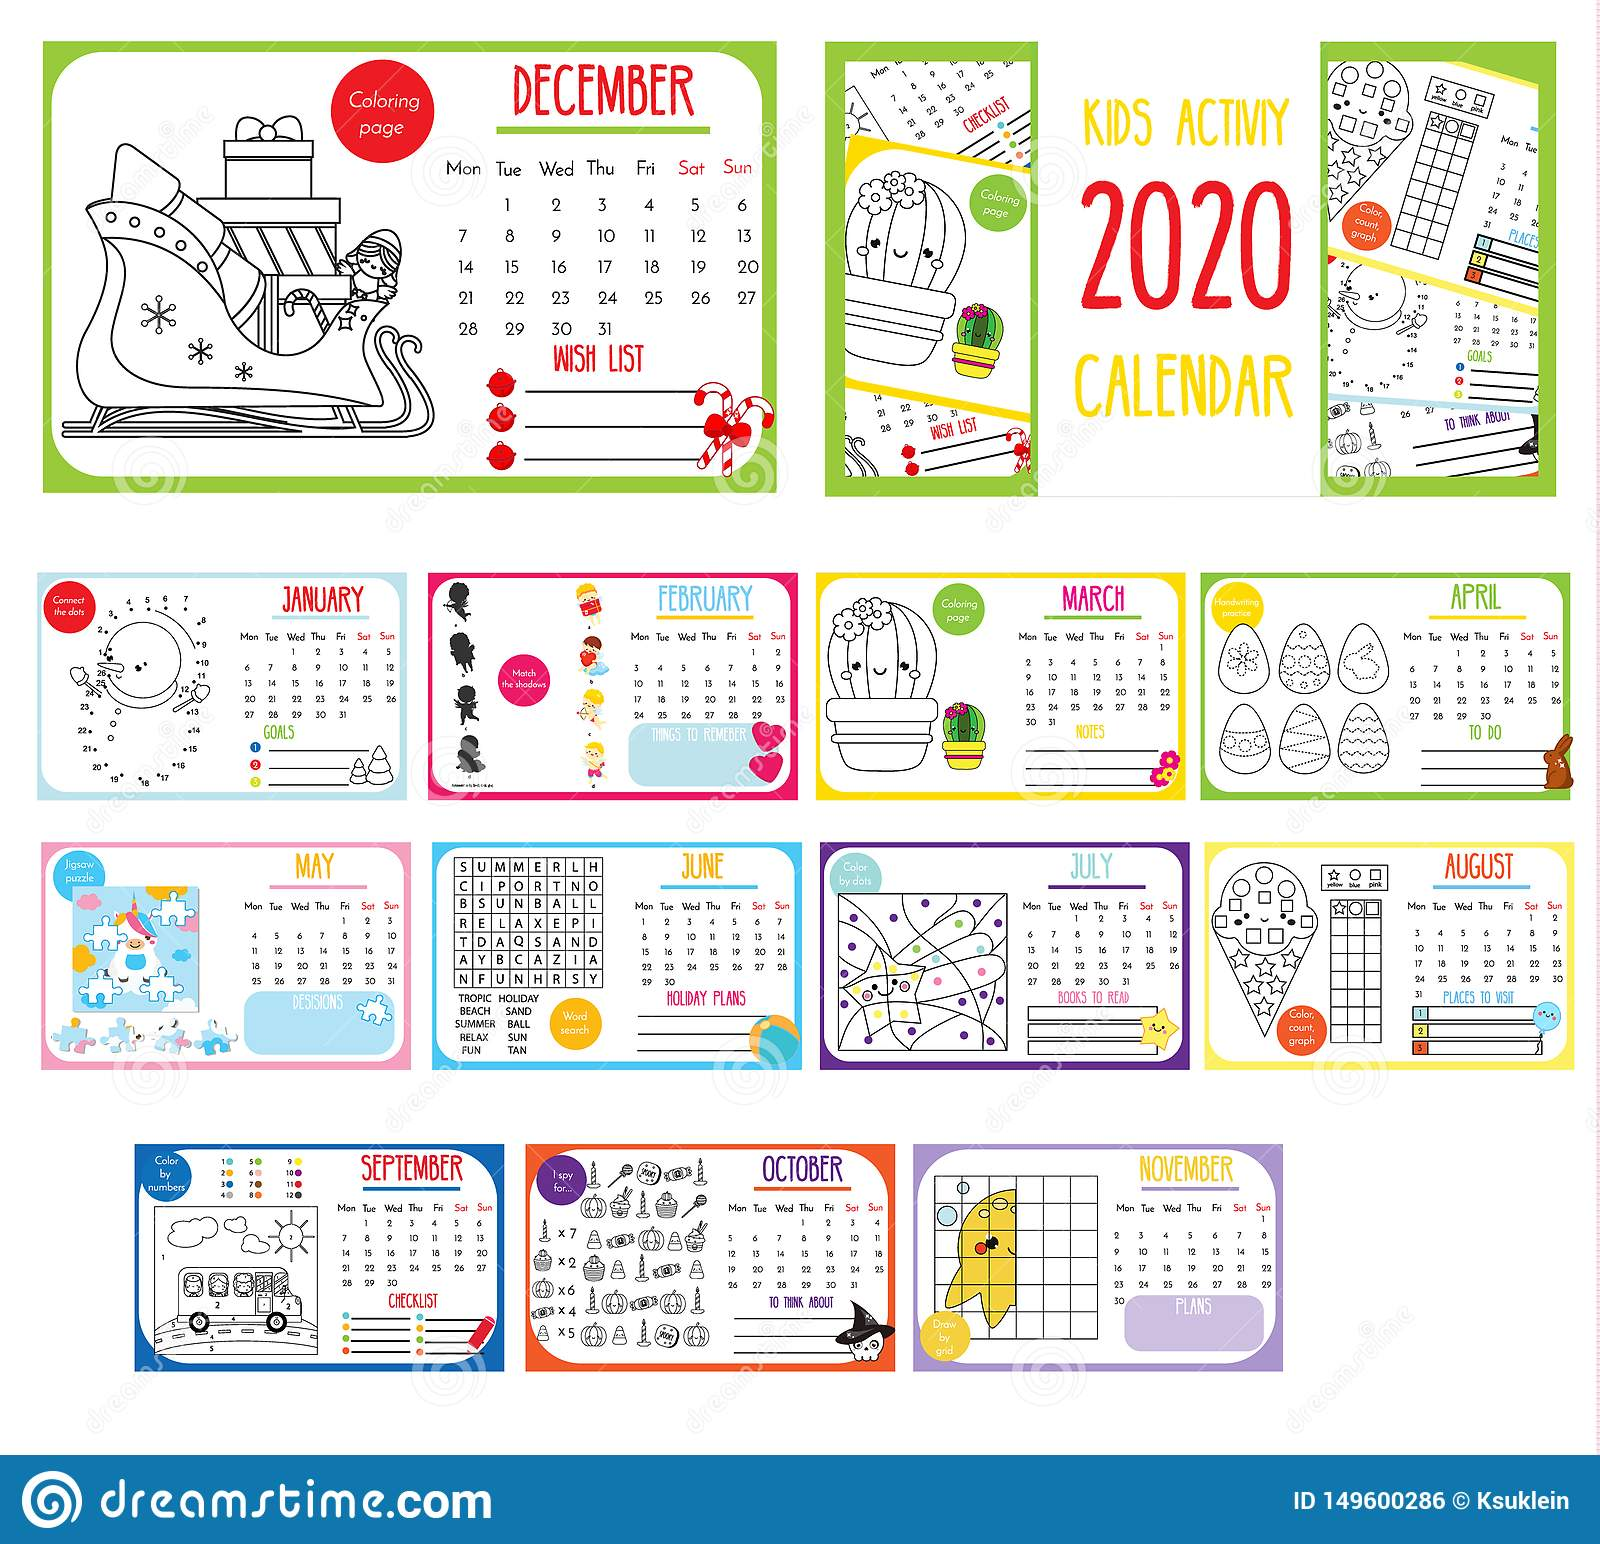 Kids Activity Calendar Annual Calendar With